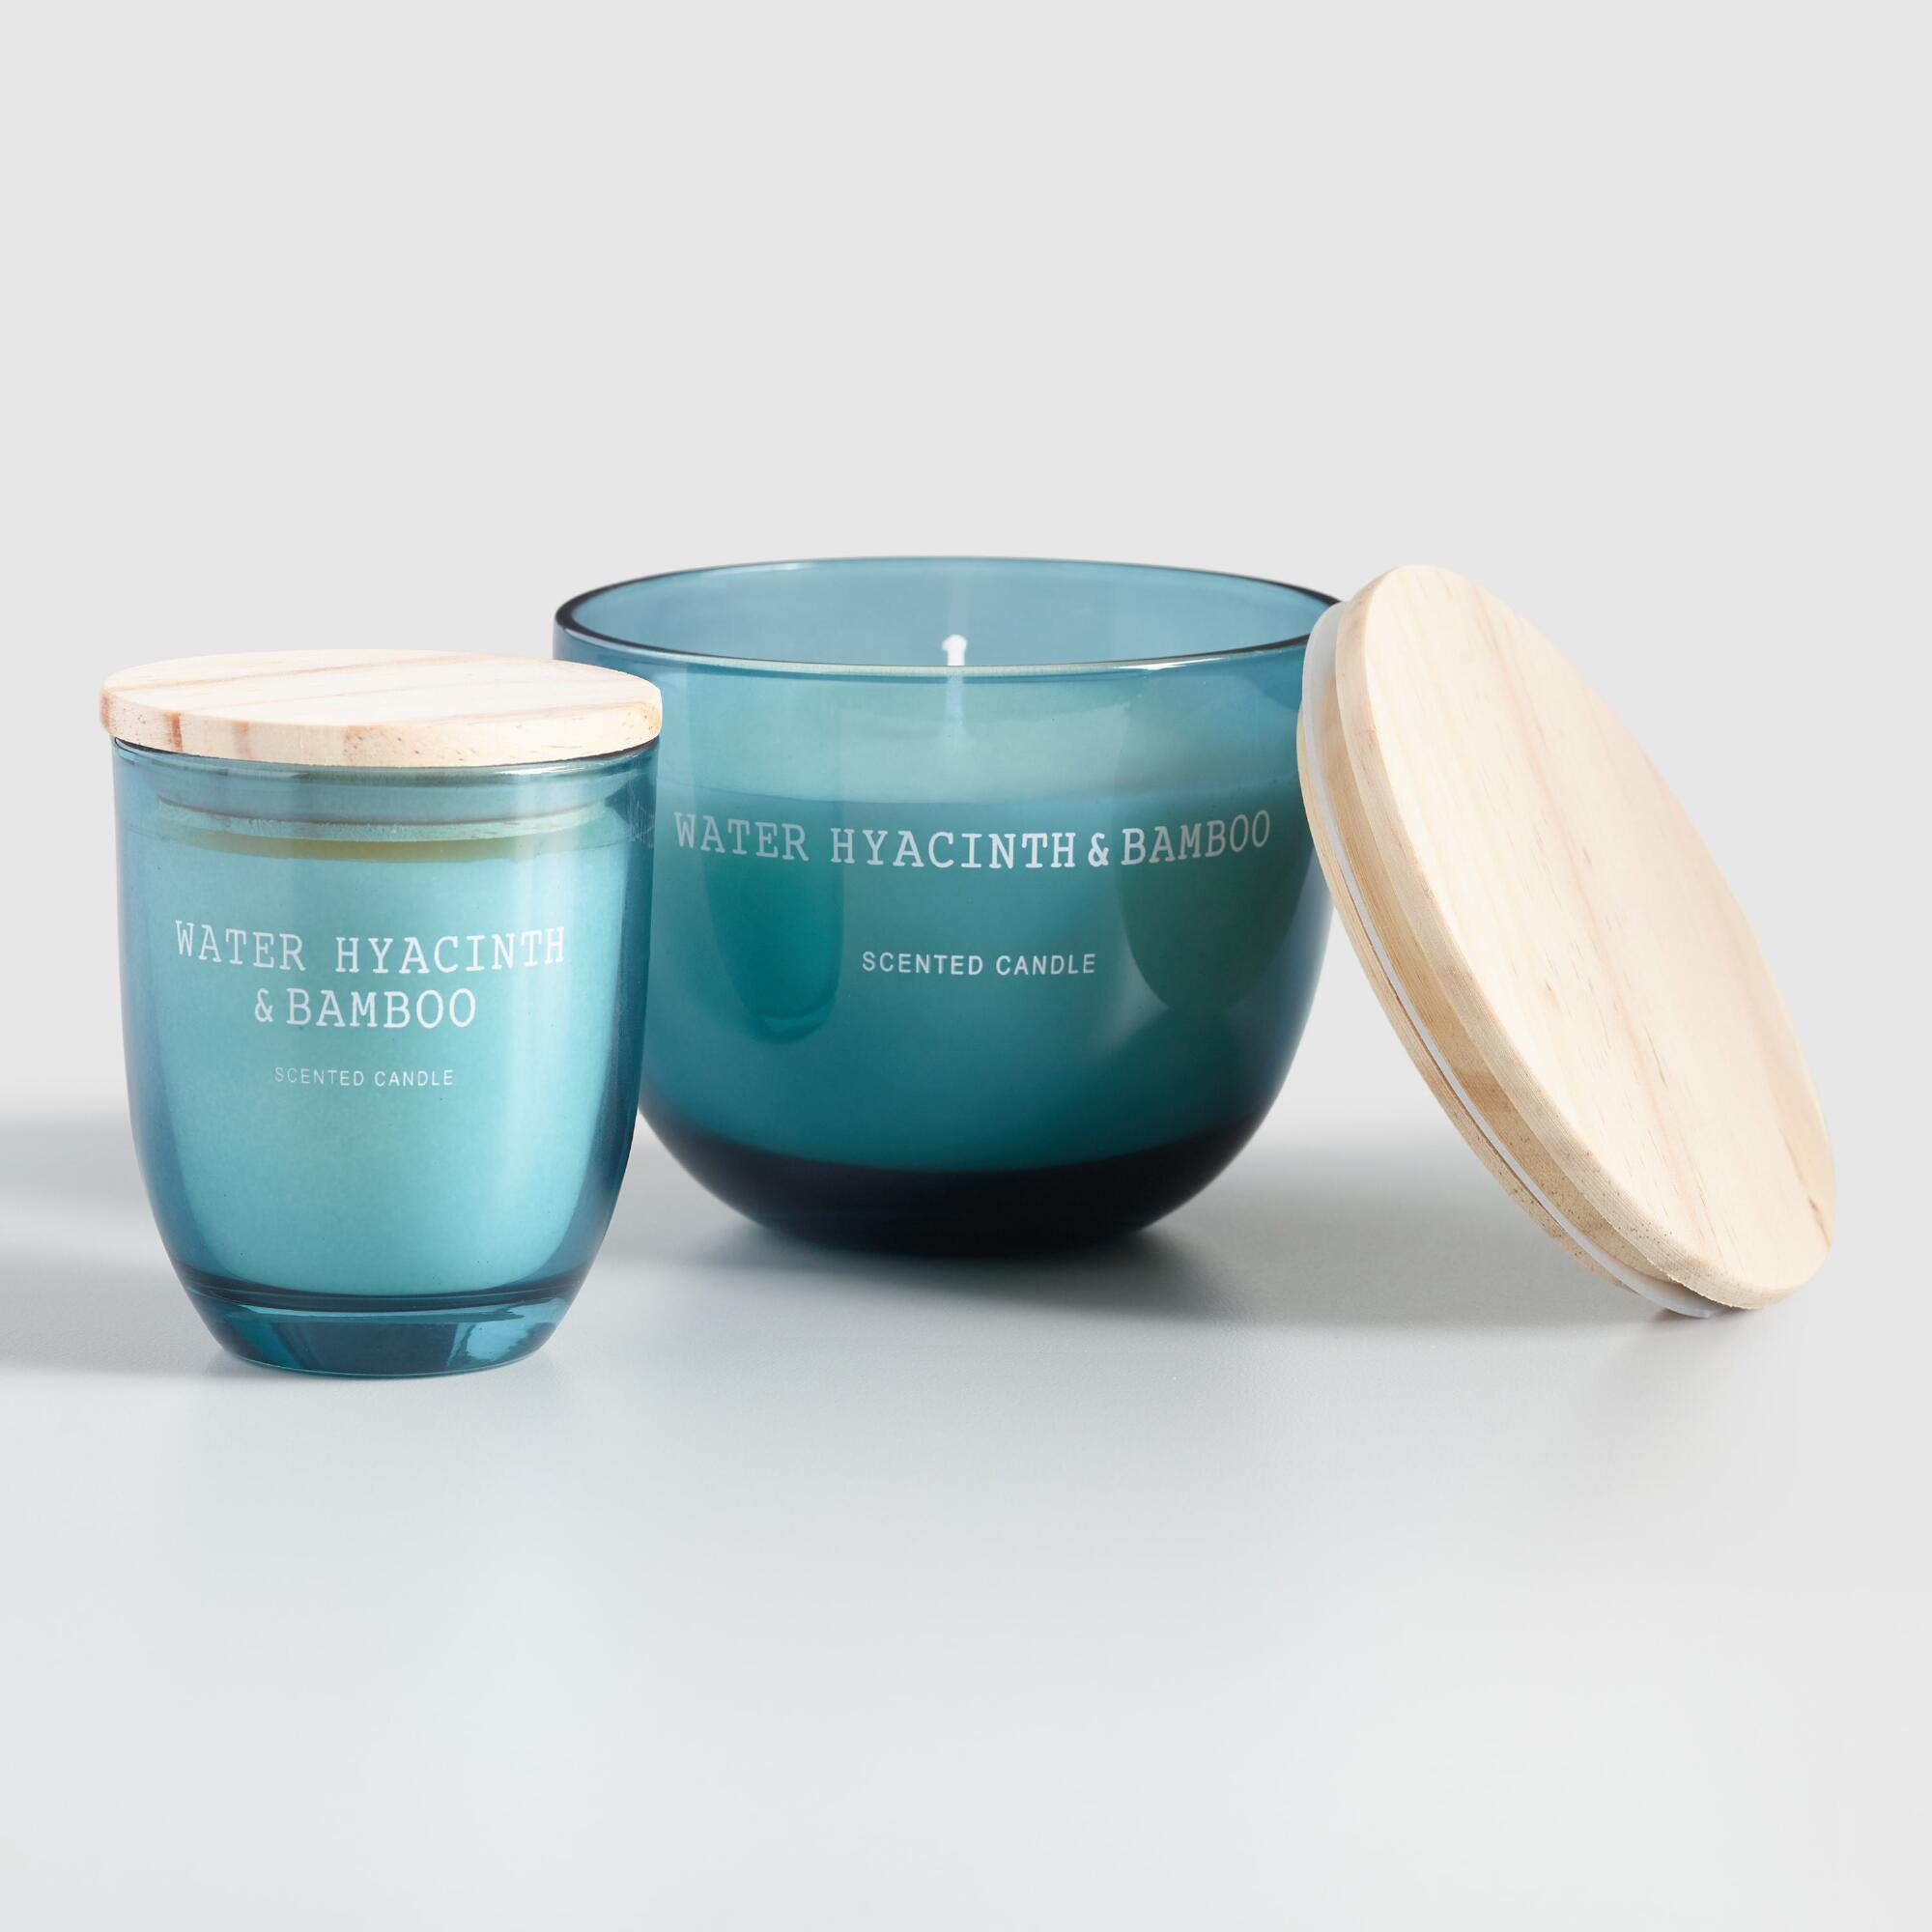 Light Blue Water Hyacinth And Bamboo Filled Jar Candle $9.99-$14.99